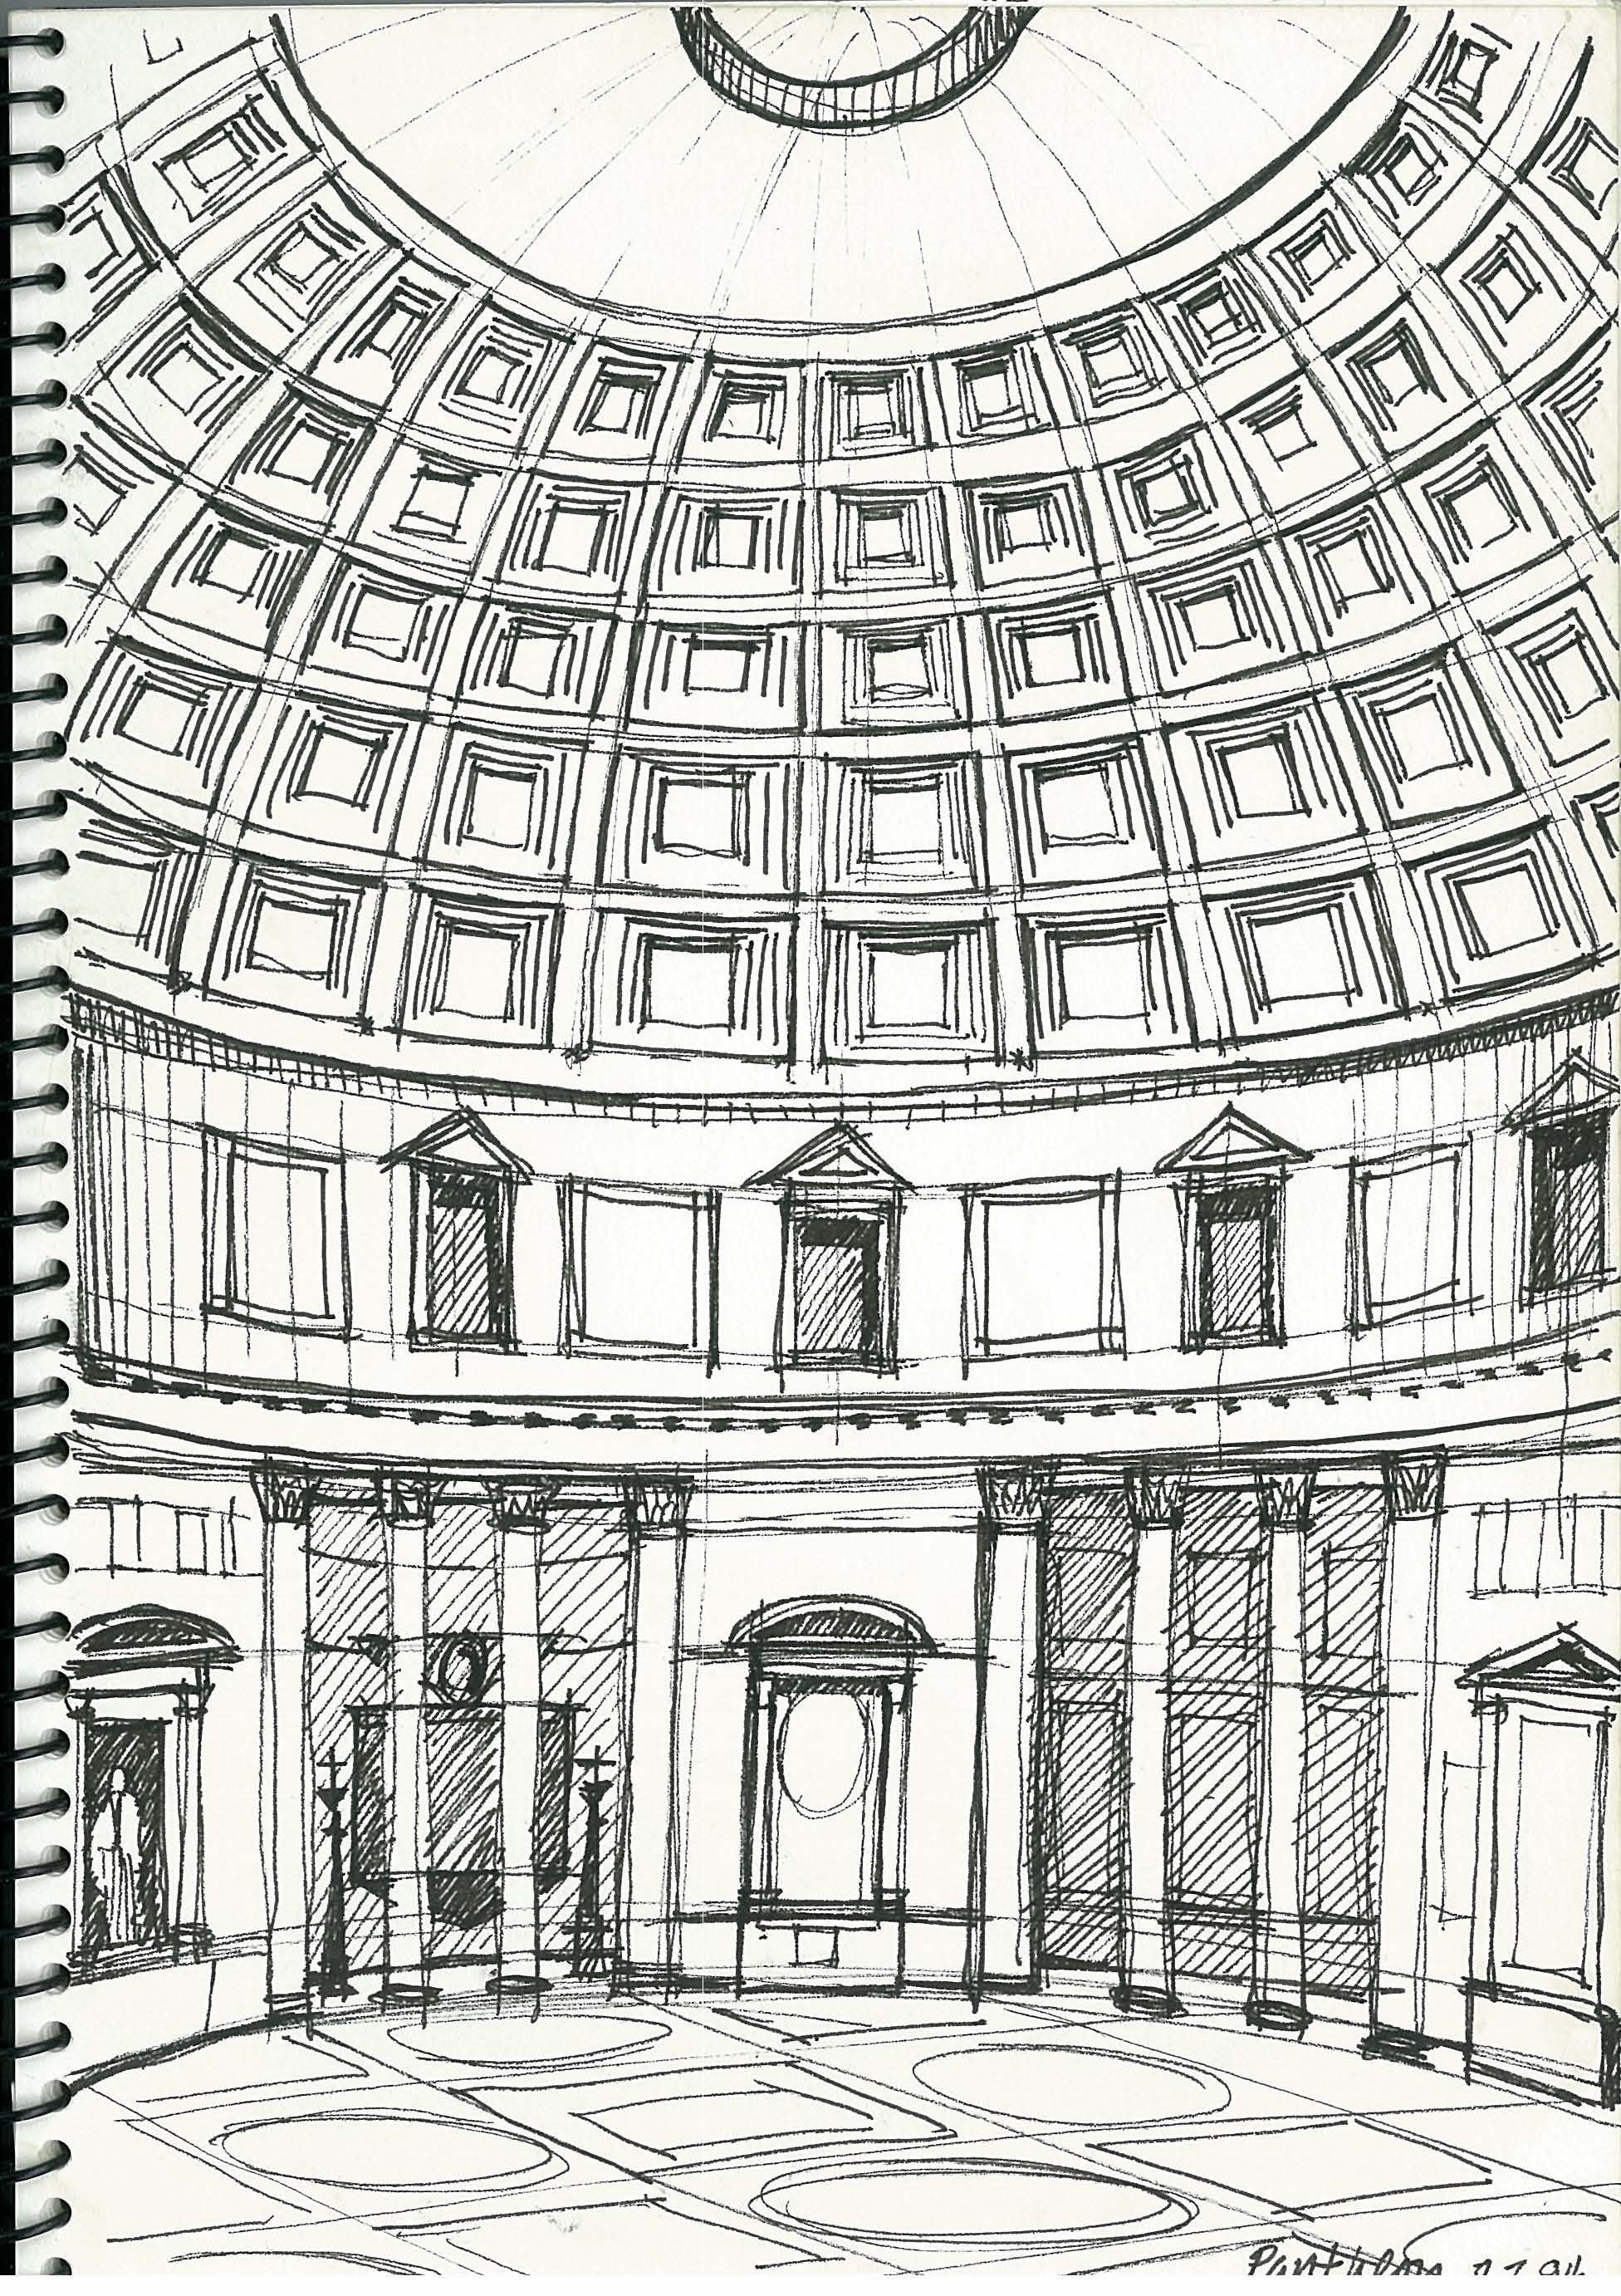 1994 - 5 Rome Pantheon cropped.jpg